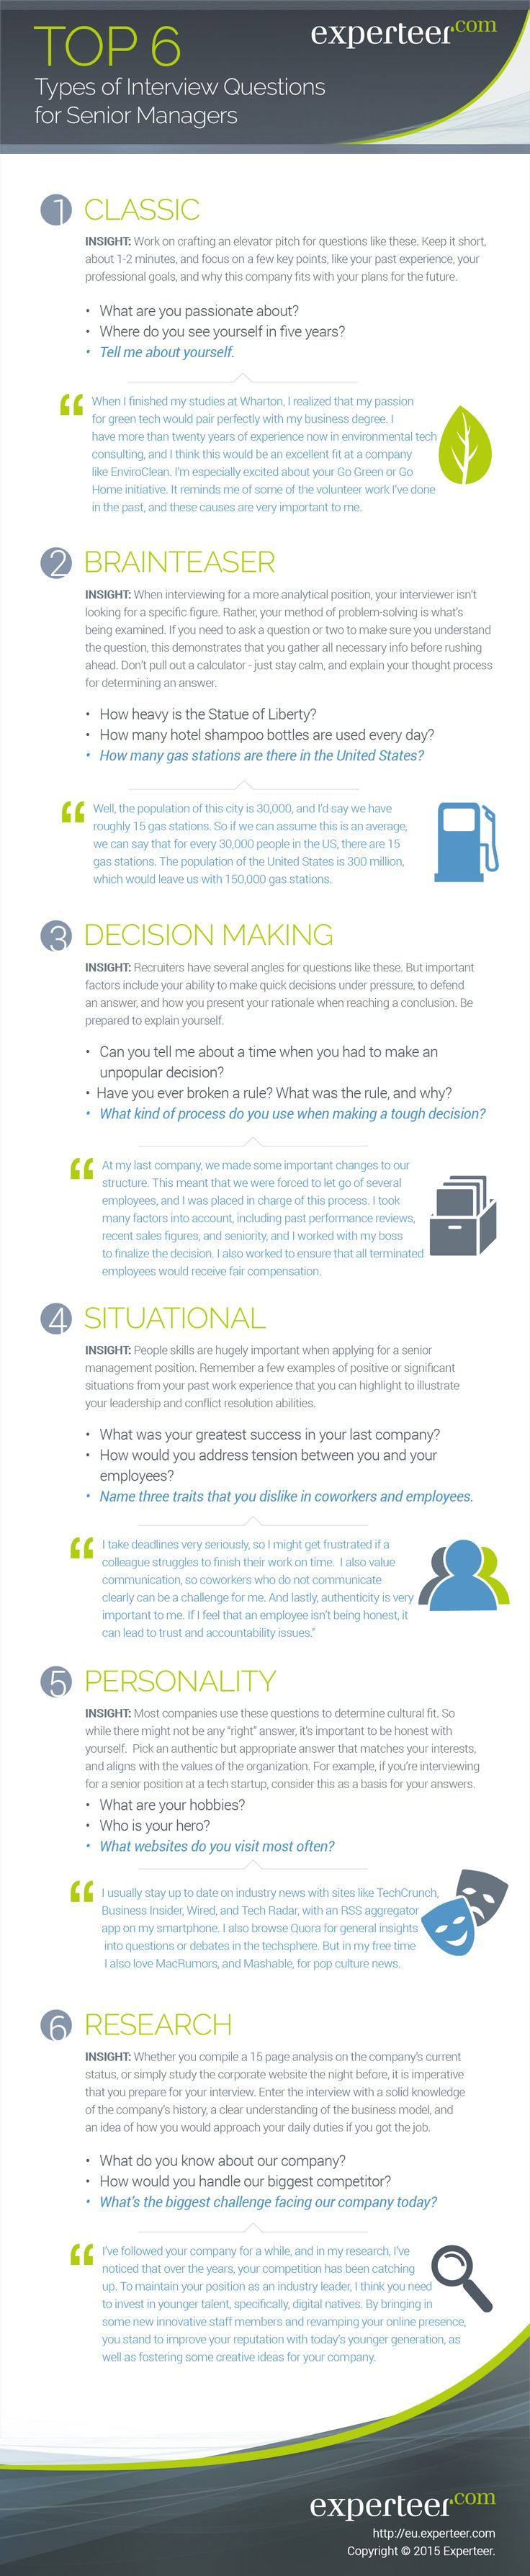 15 best general job search sites images on pinterest job search the top 6 most common interview questions for senior managers falaconquin